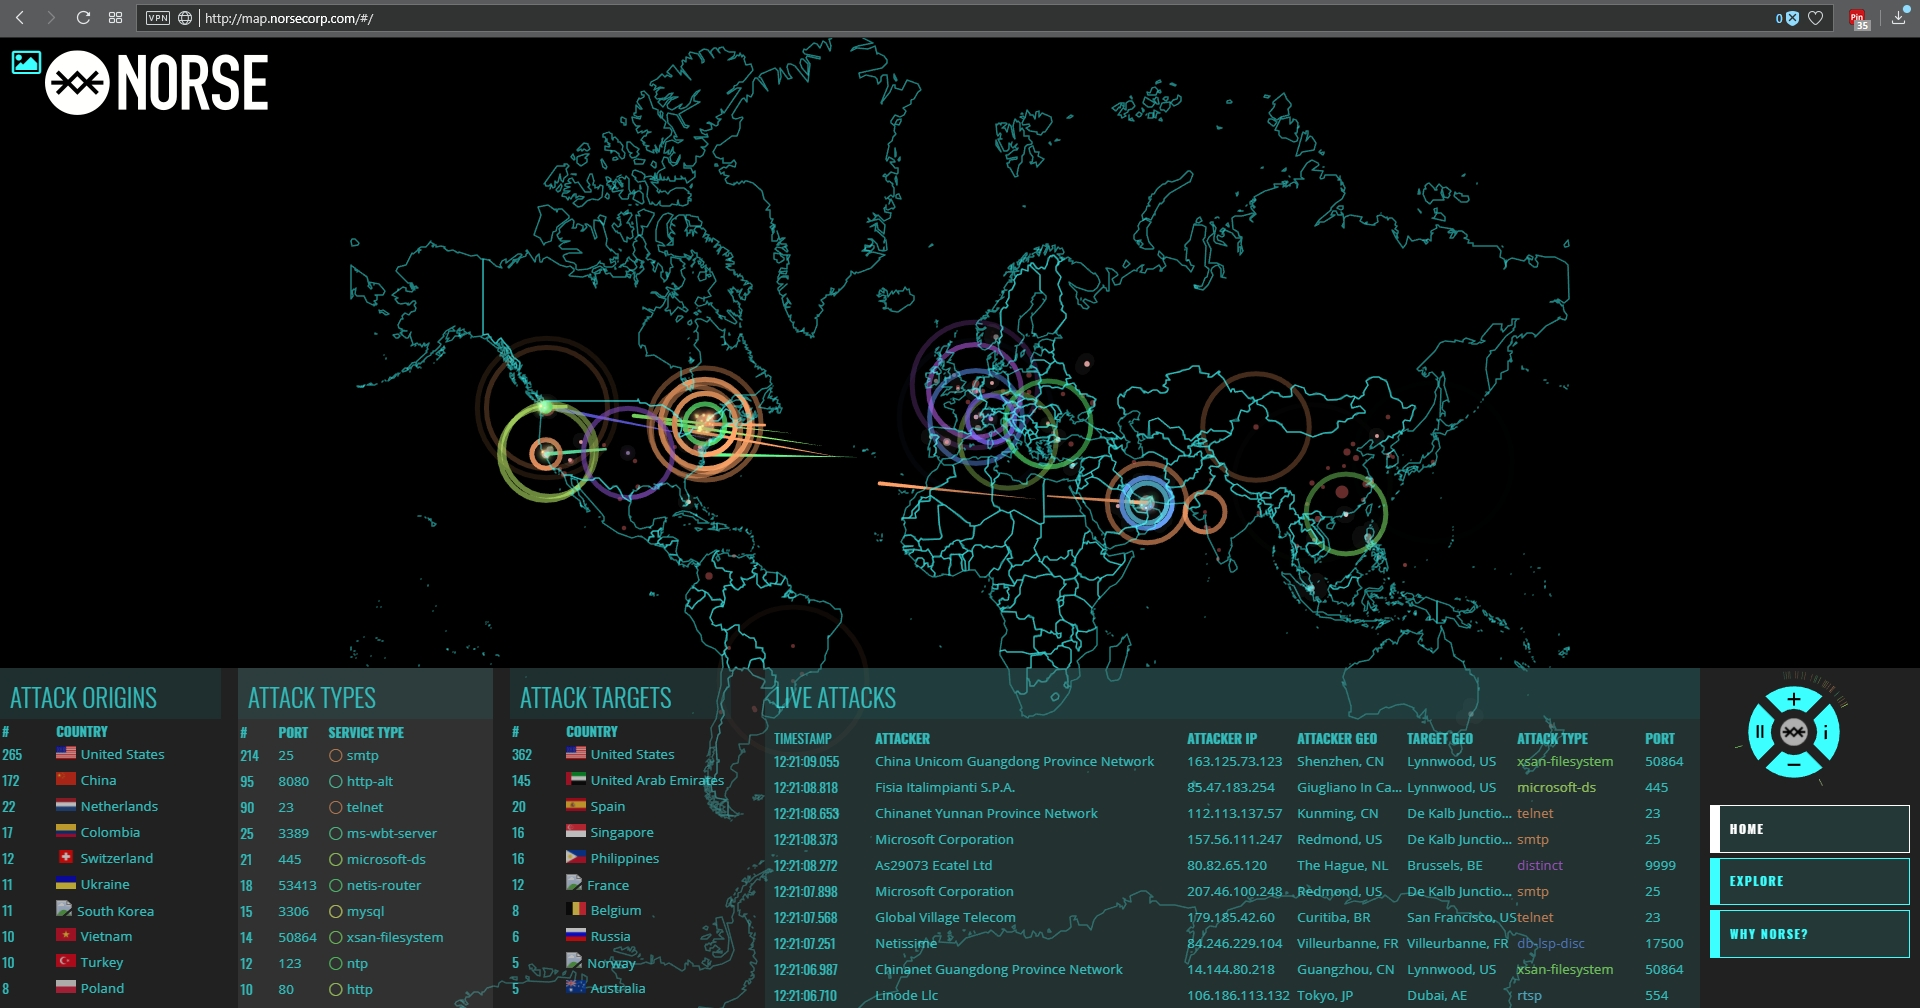 Norsecorp's Threat Map